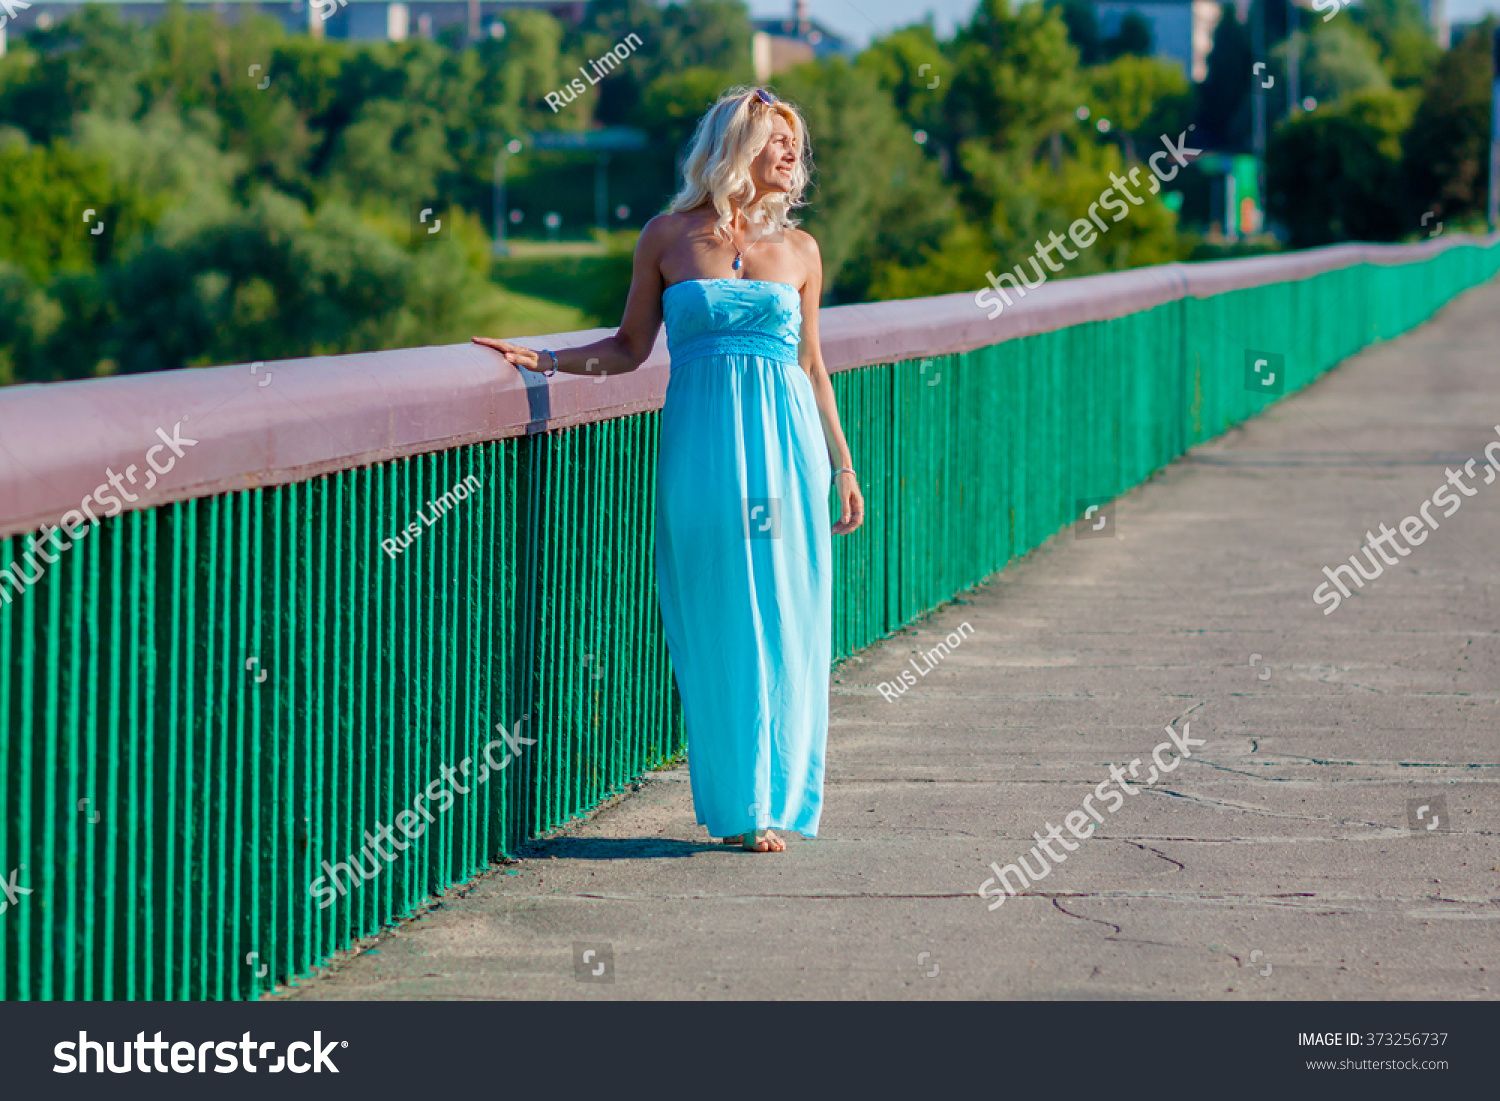 Are going mature blonde blue dress